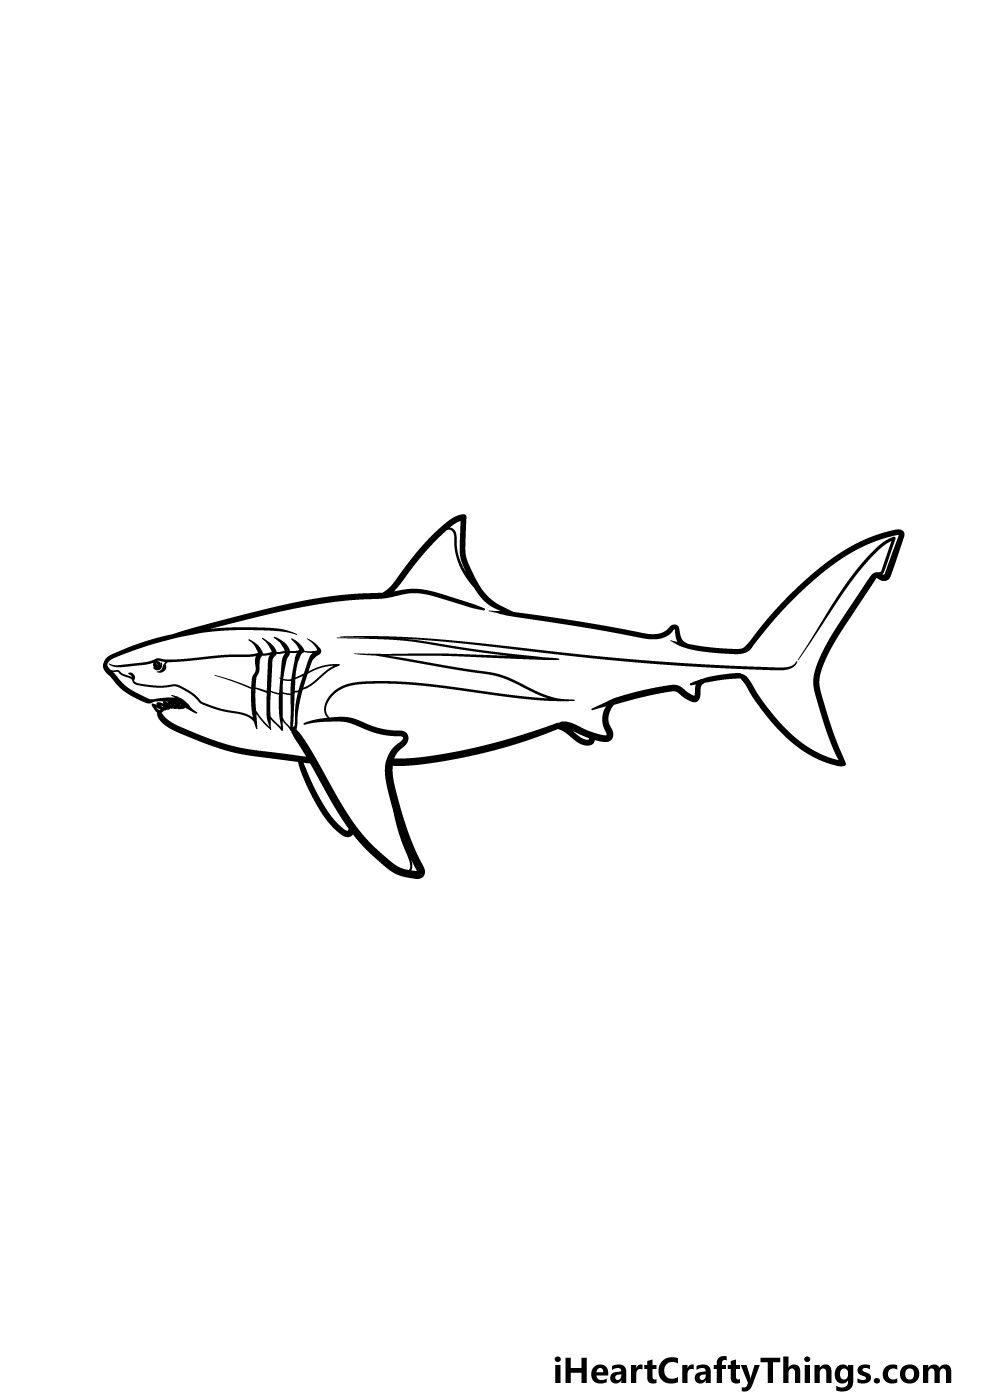 drawing a megalodon step 5